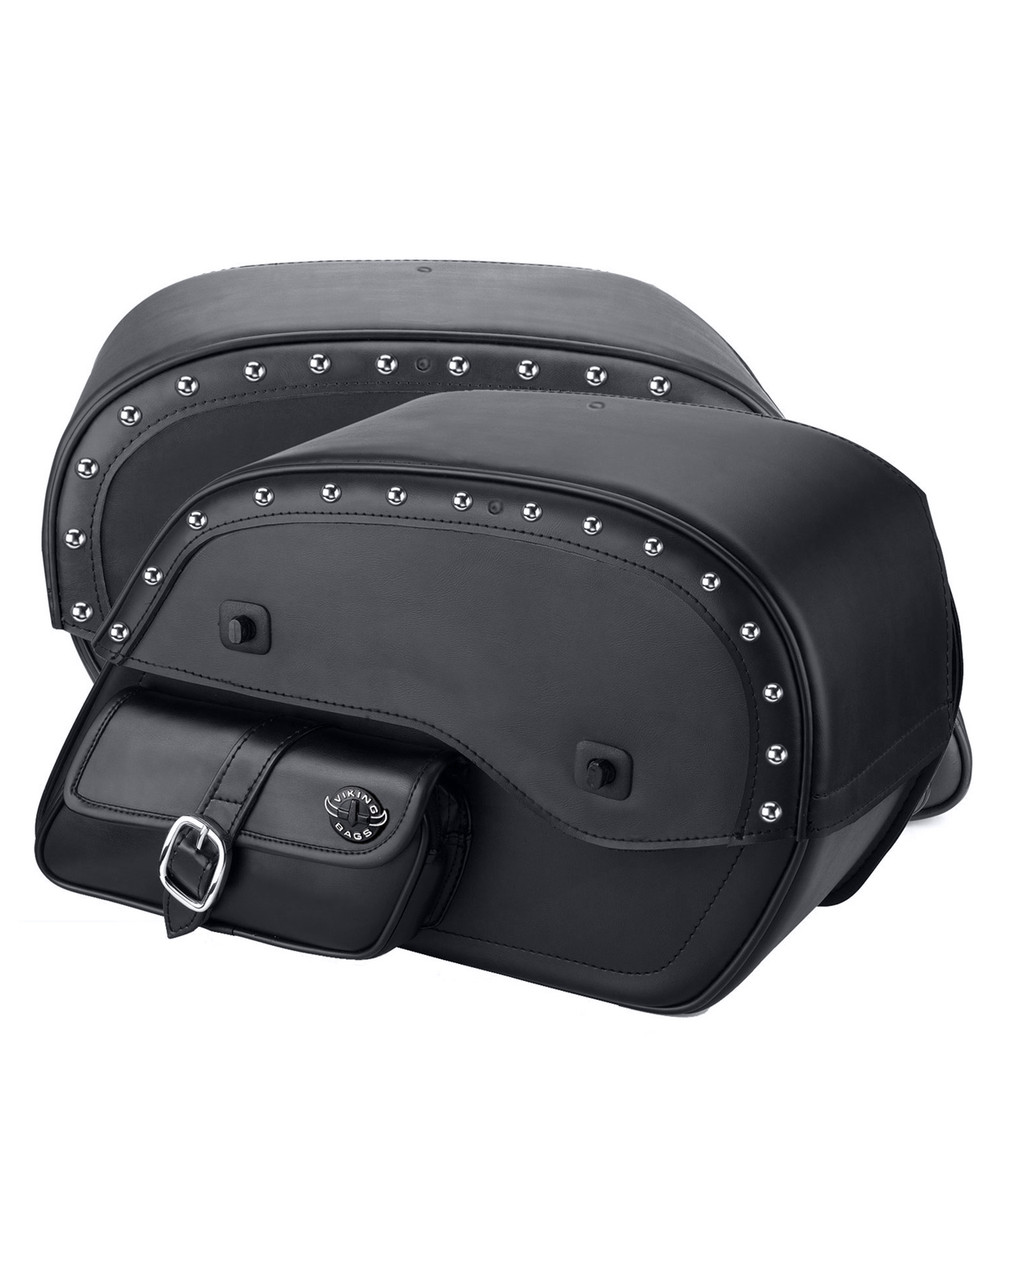 Viking SS Side Pocket Studded Large Motorcycle Saddlebags For Harley Softail Custom FXSTC Both Bags View